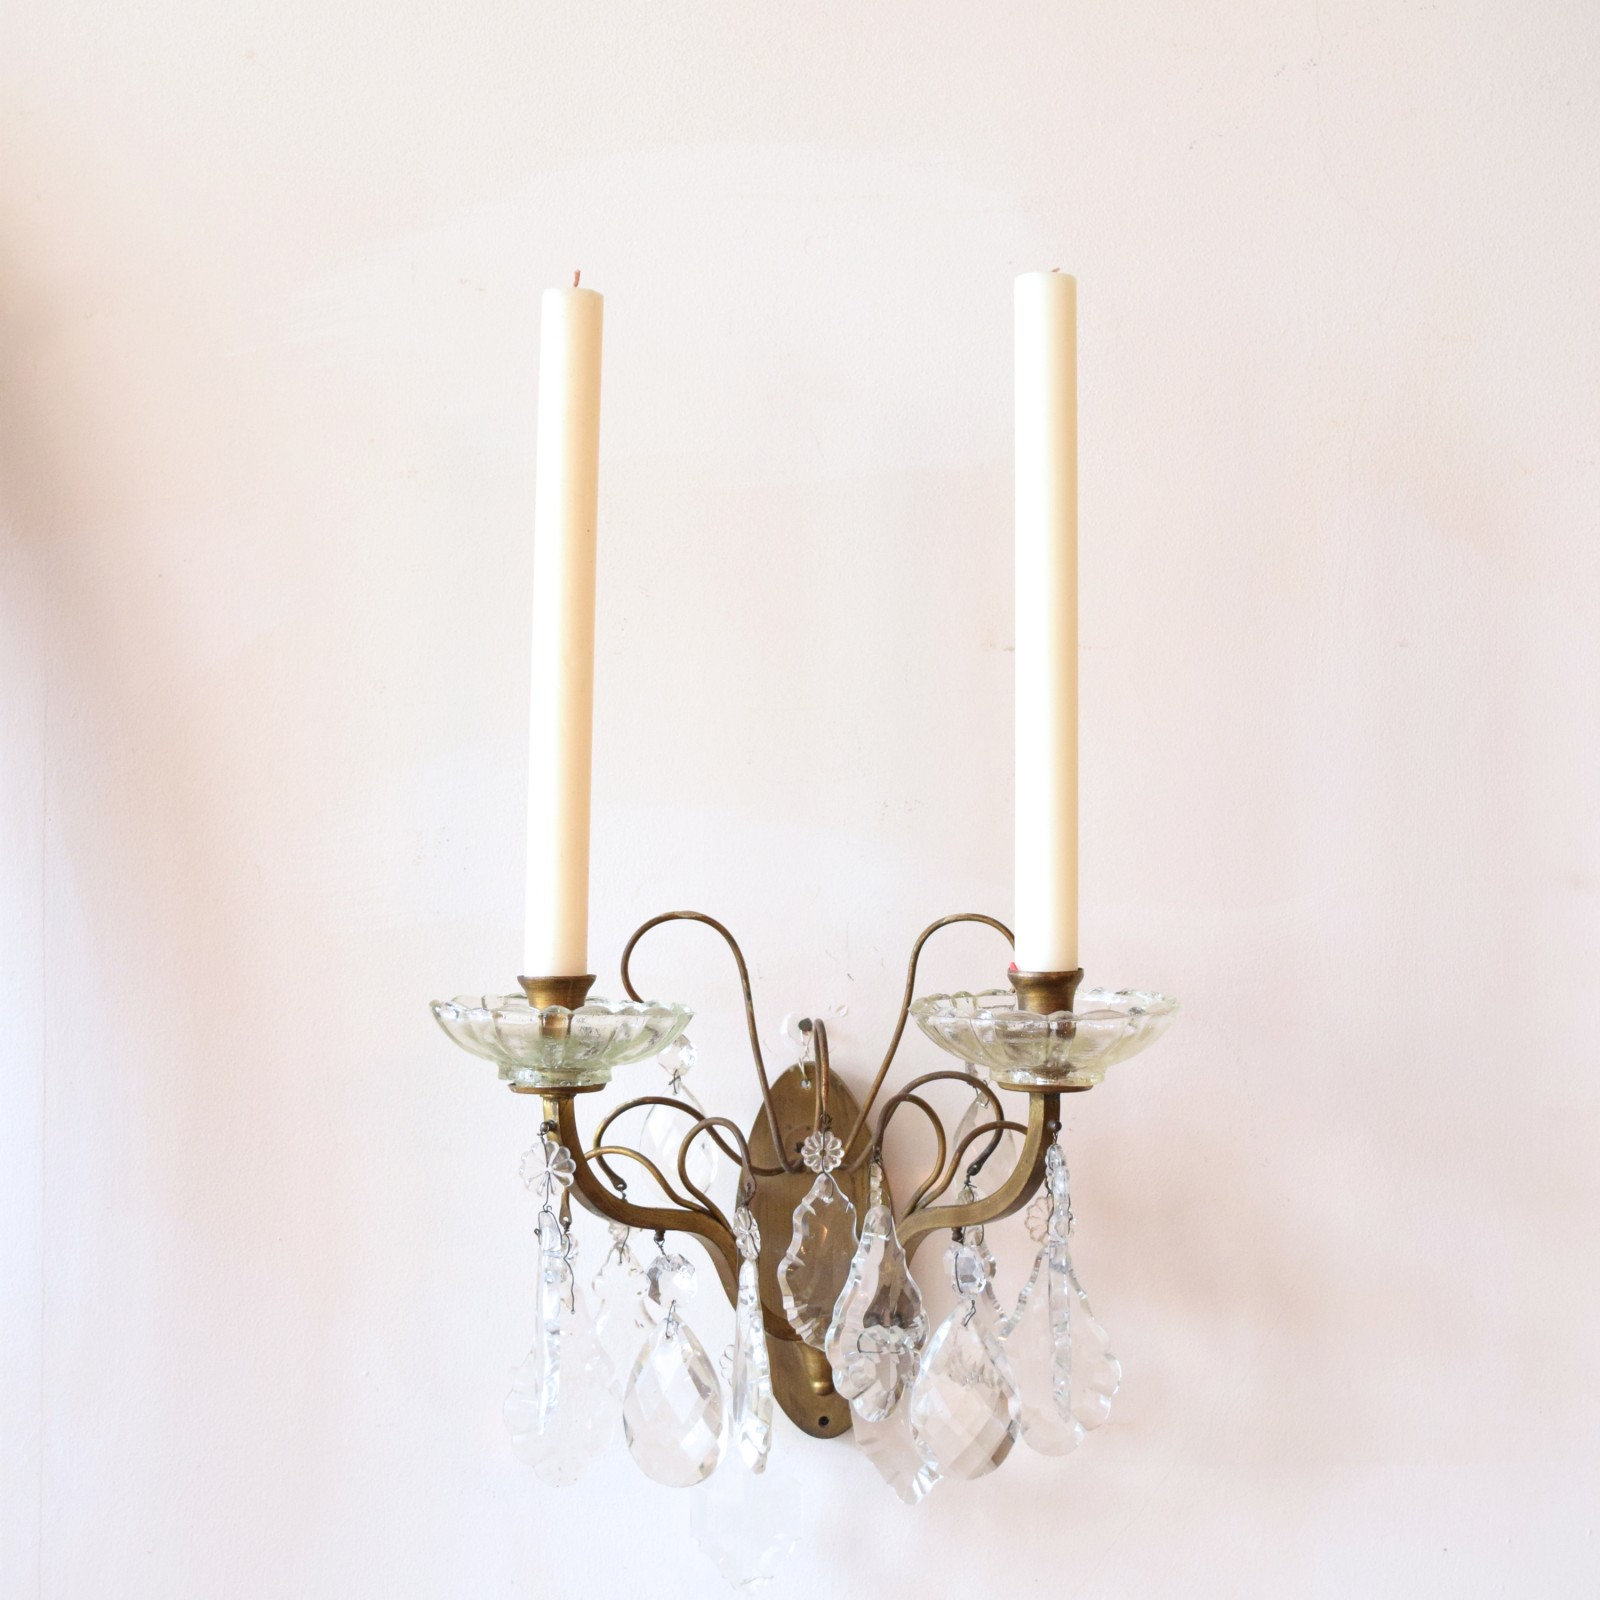 Candelabra Wall Lights : Candelabra Wall Light